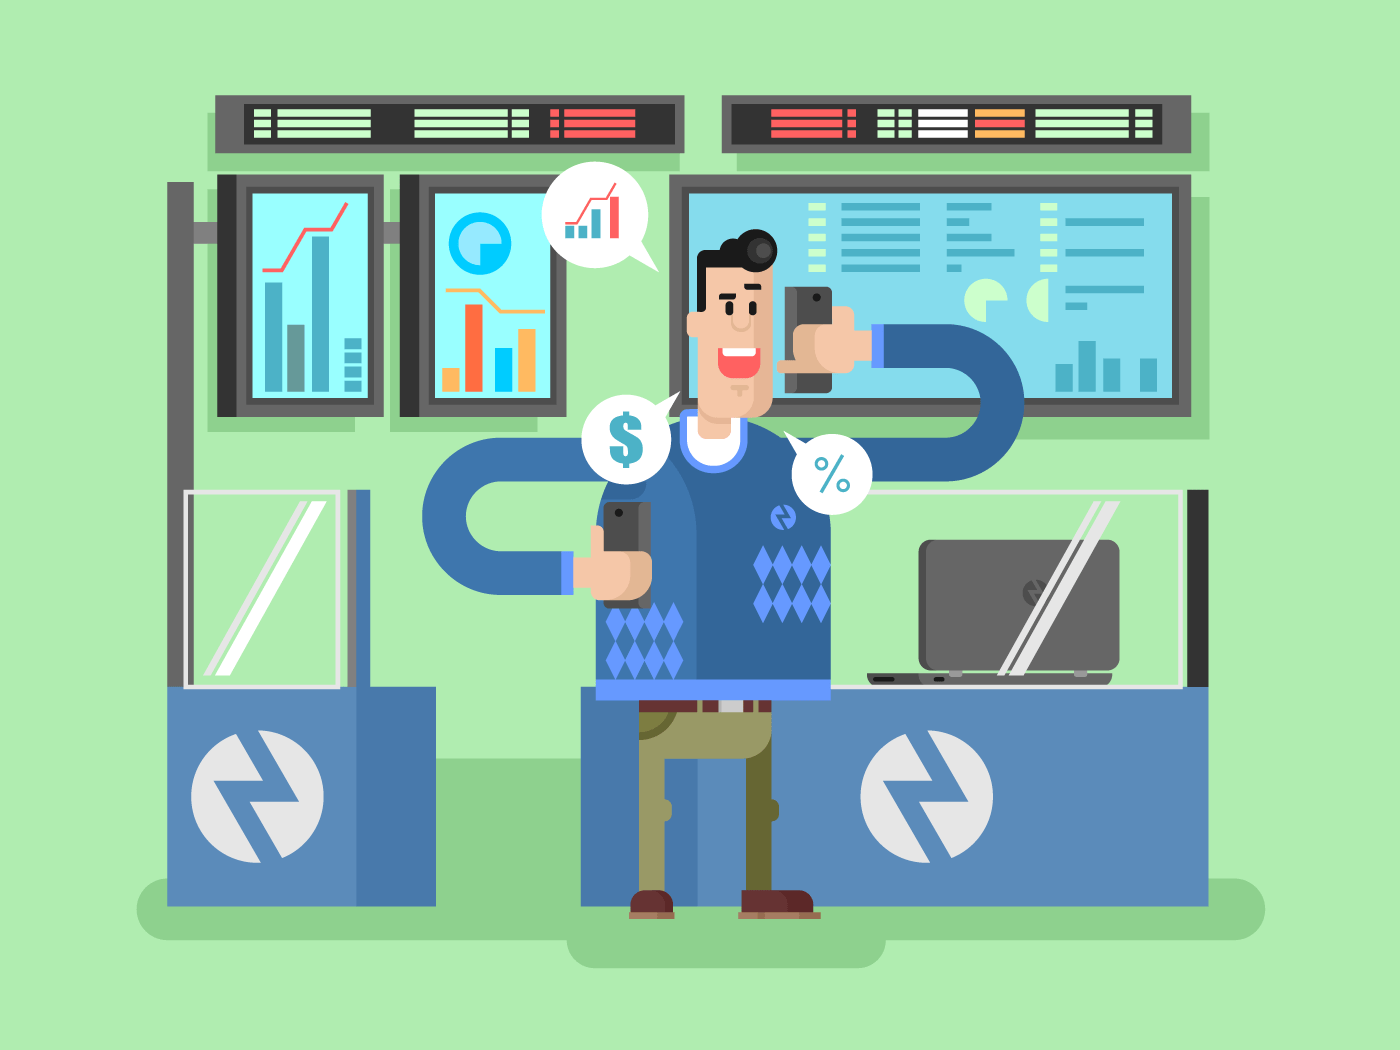 Stocks broker character flat vector illustration